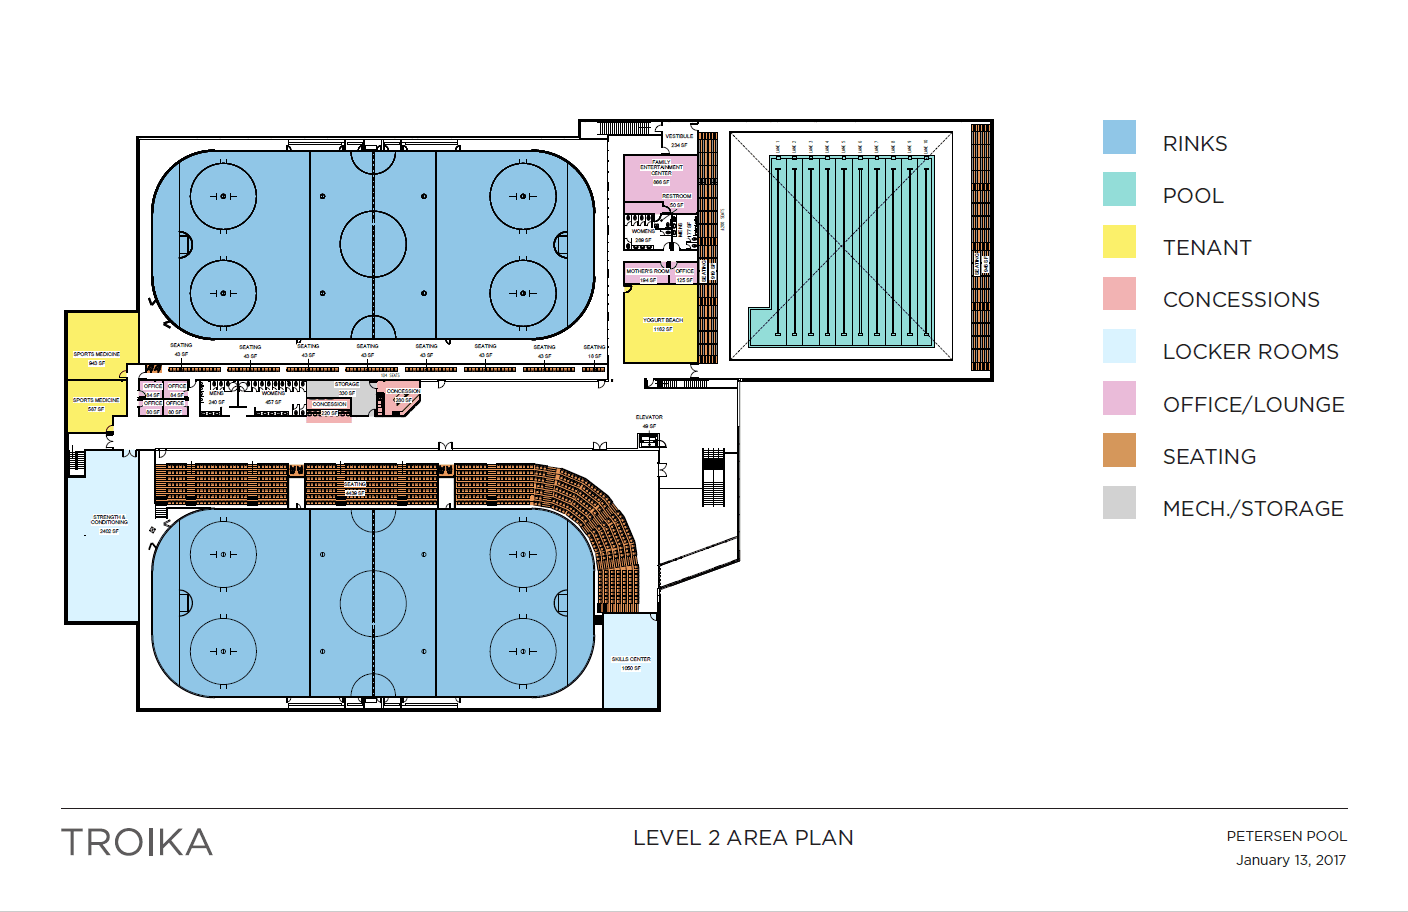 Second floor area plans for the Petersen Pool Facility